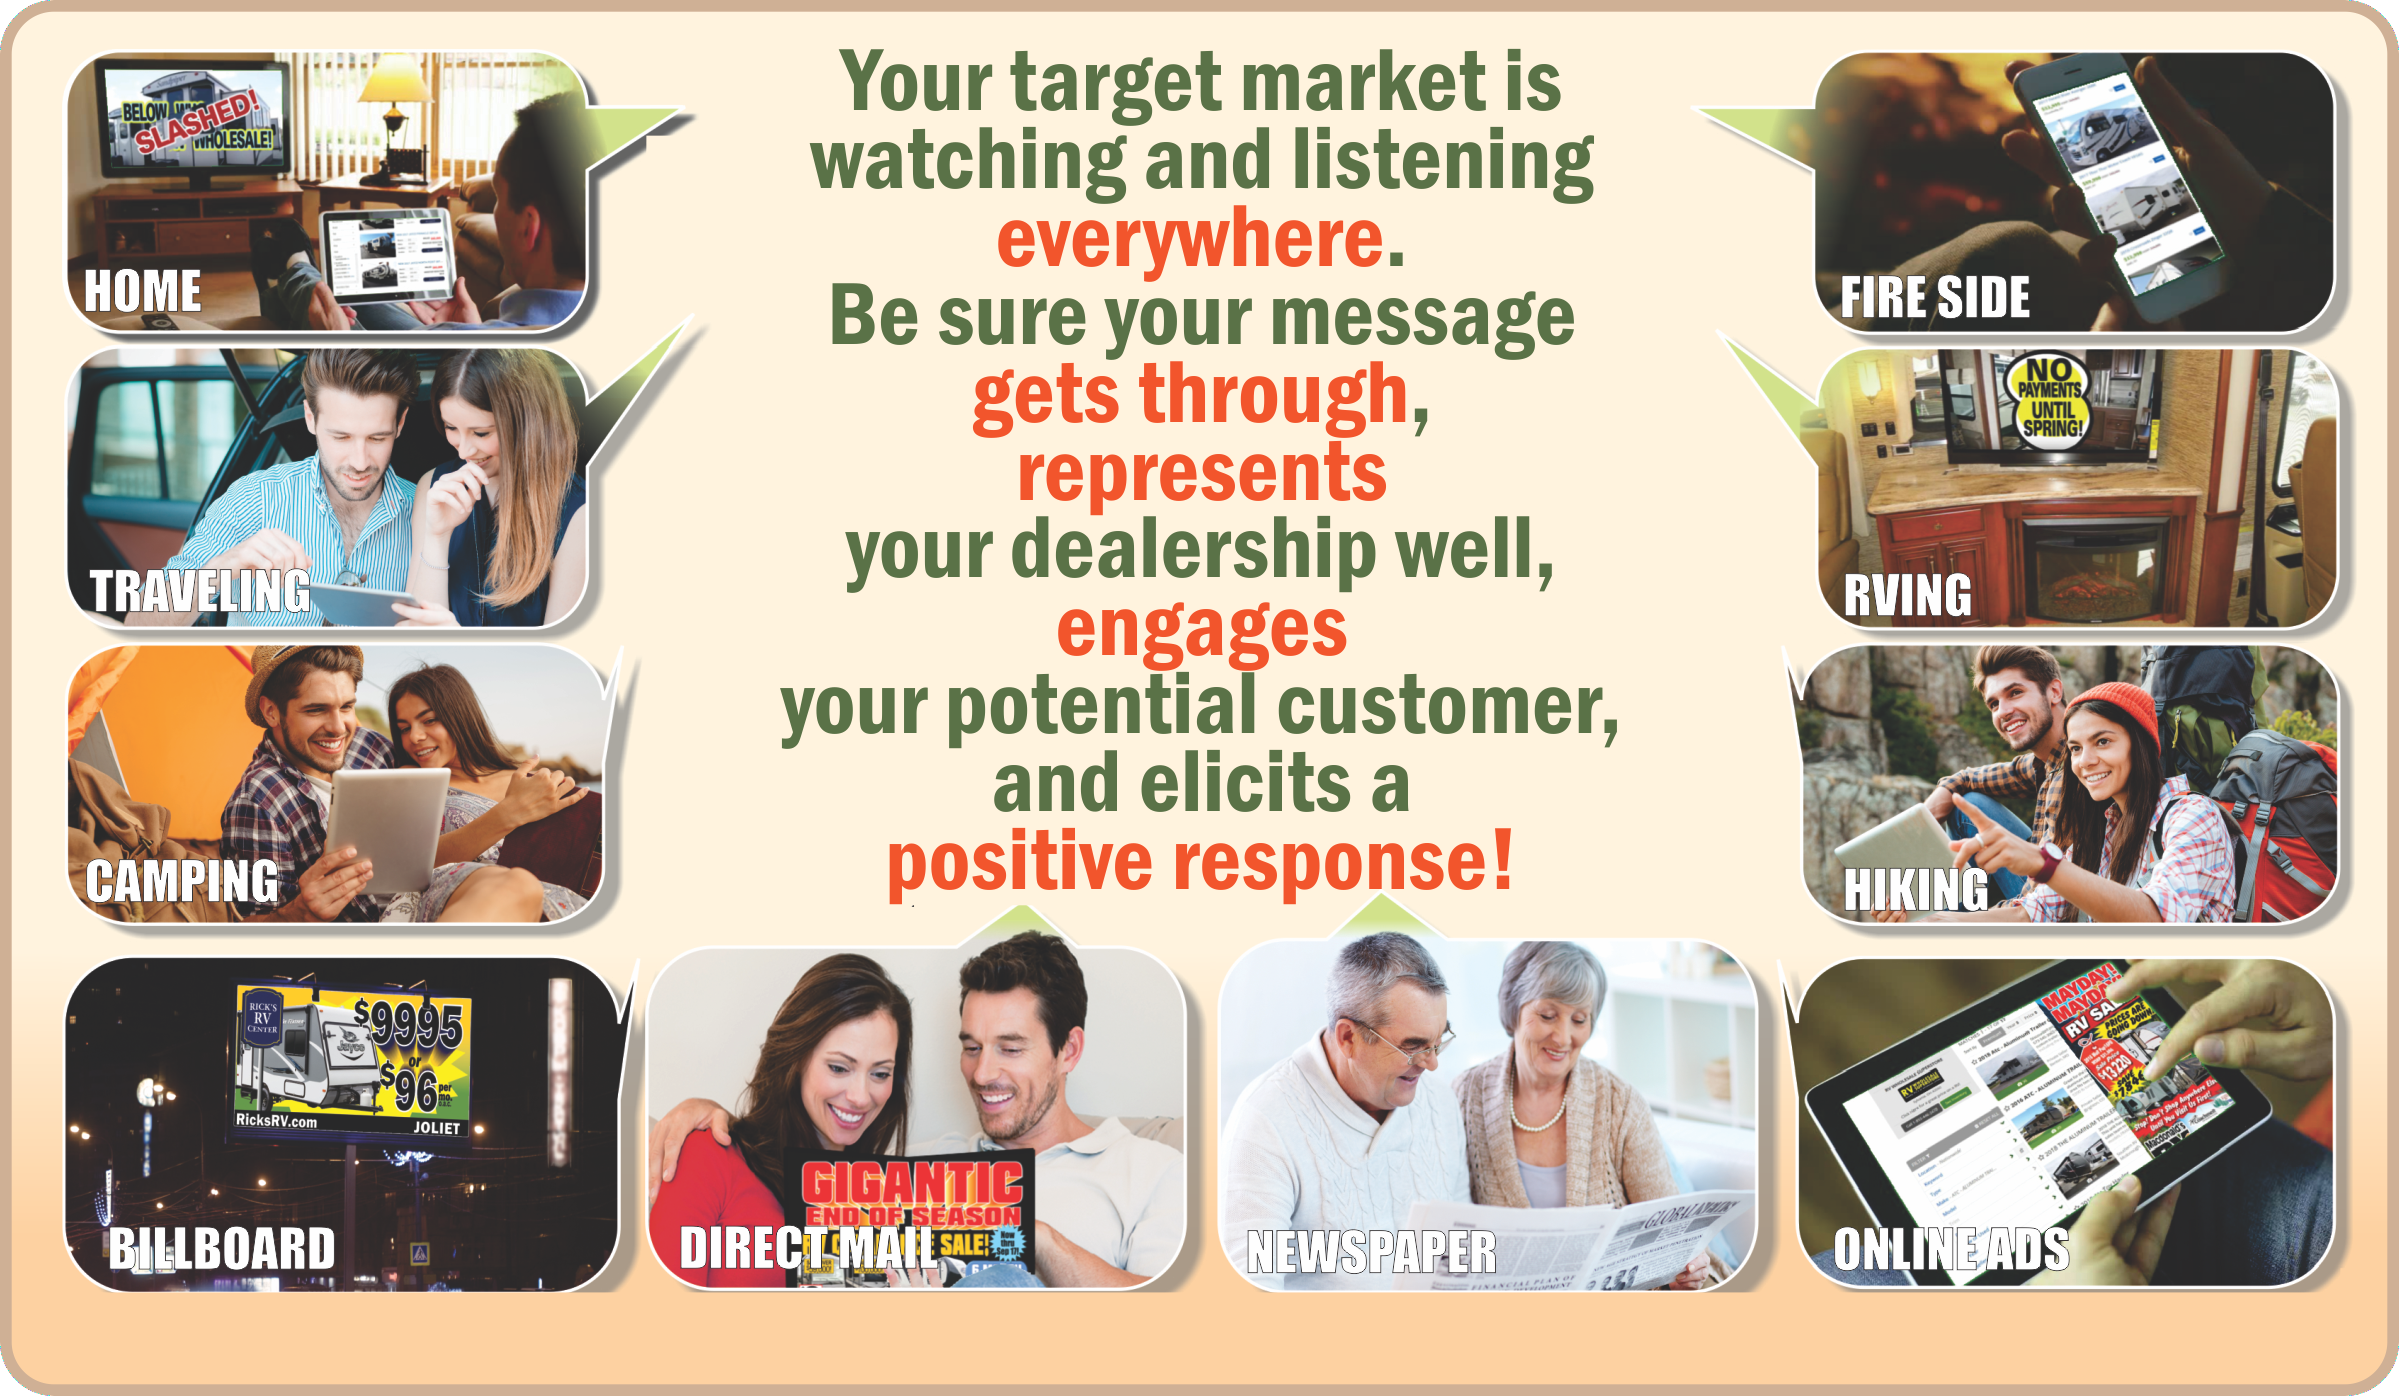 Integrated Marketing Communications - Your target is everywhere